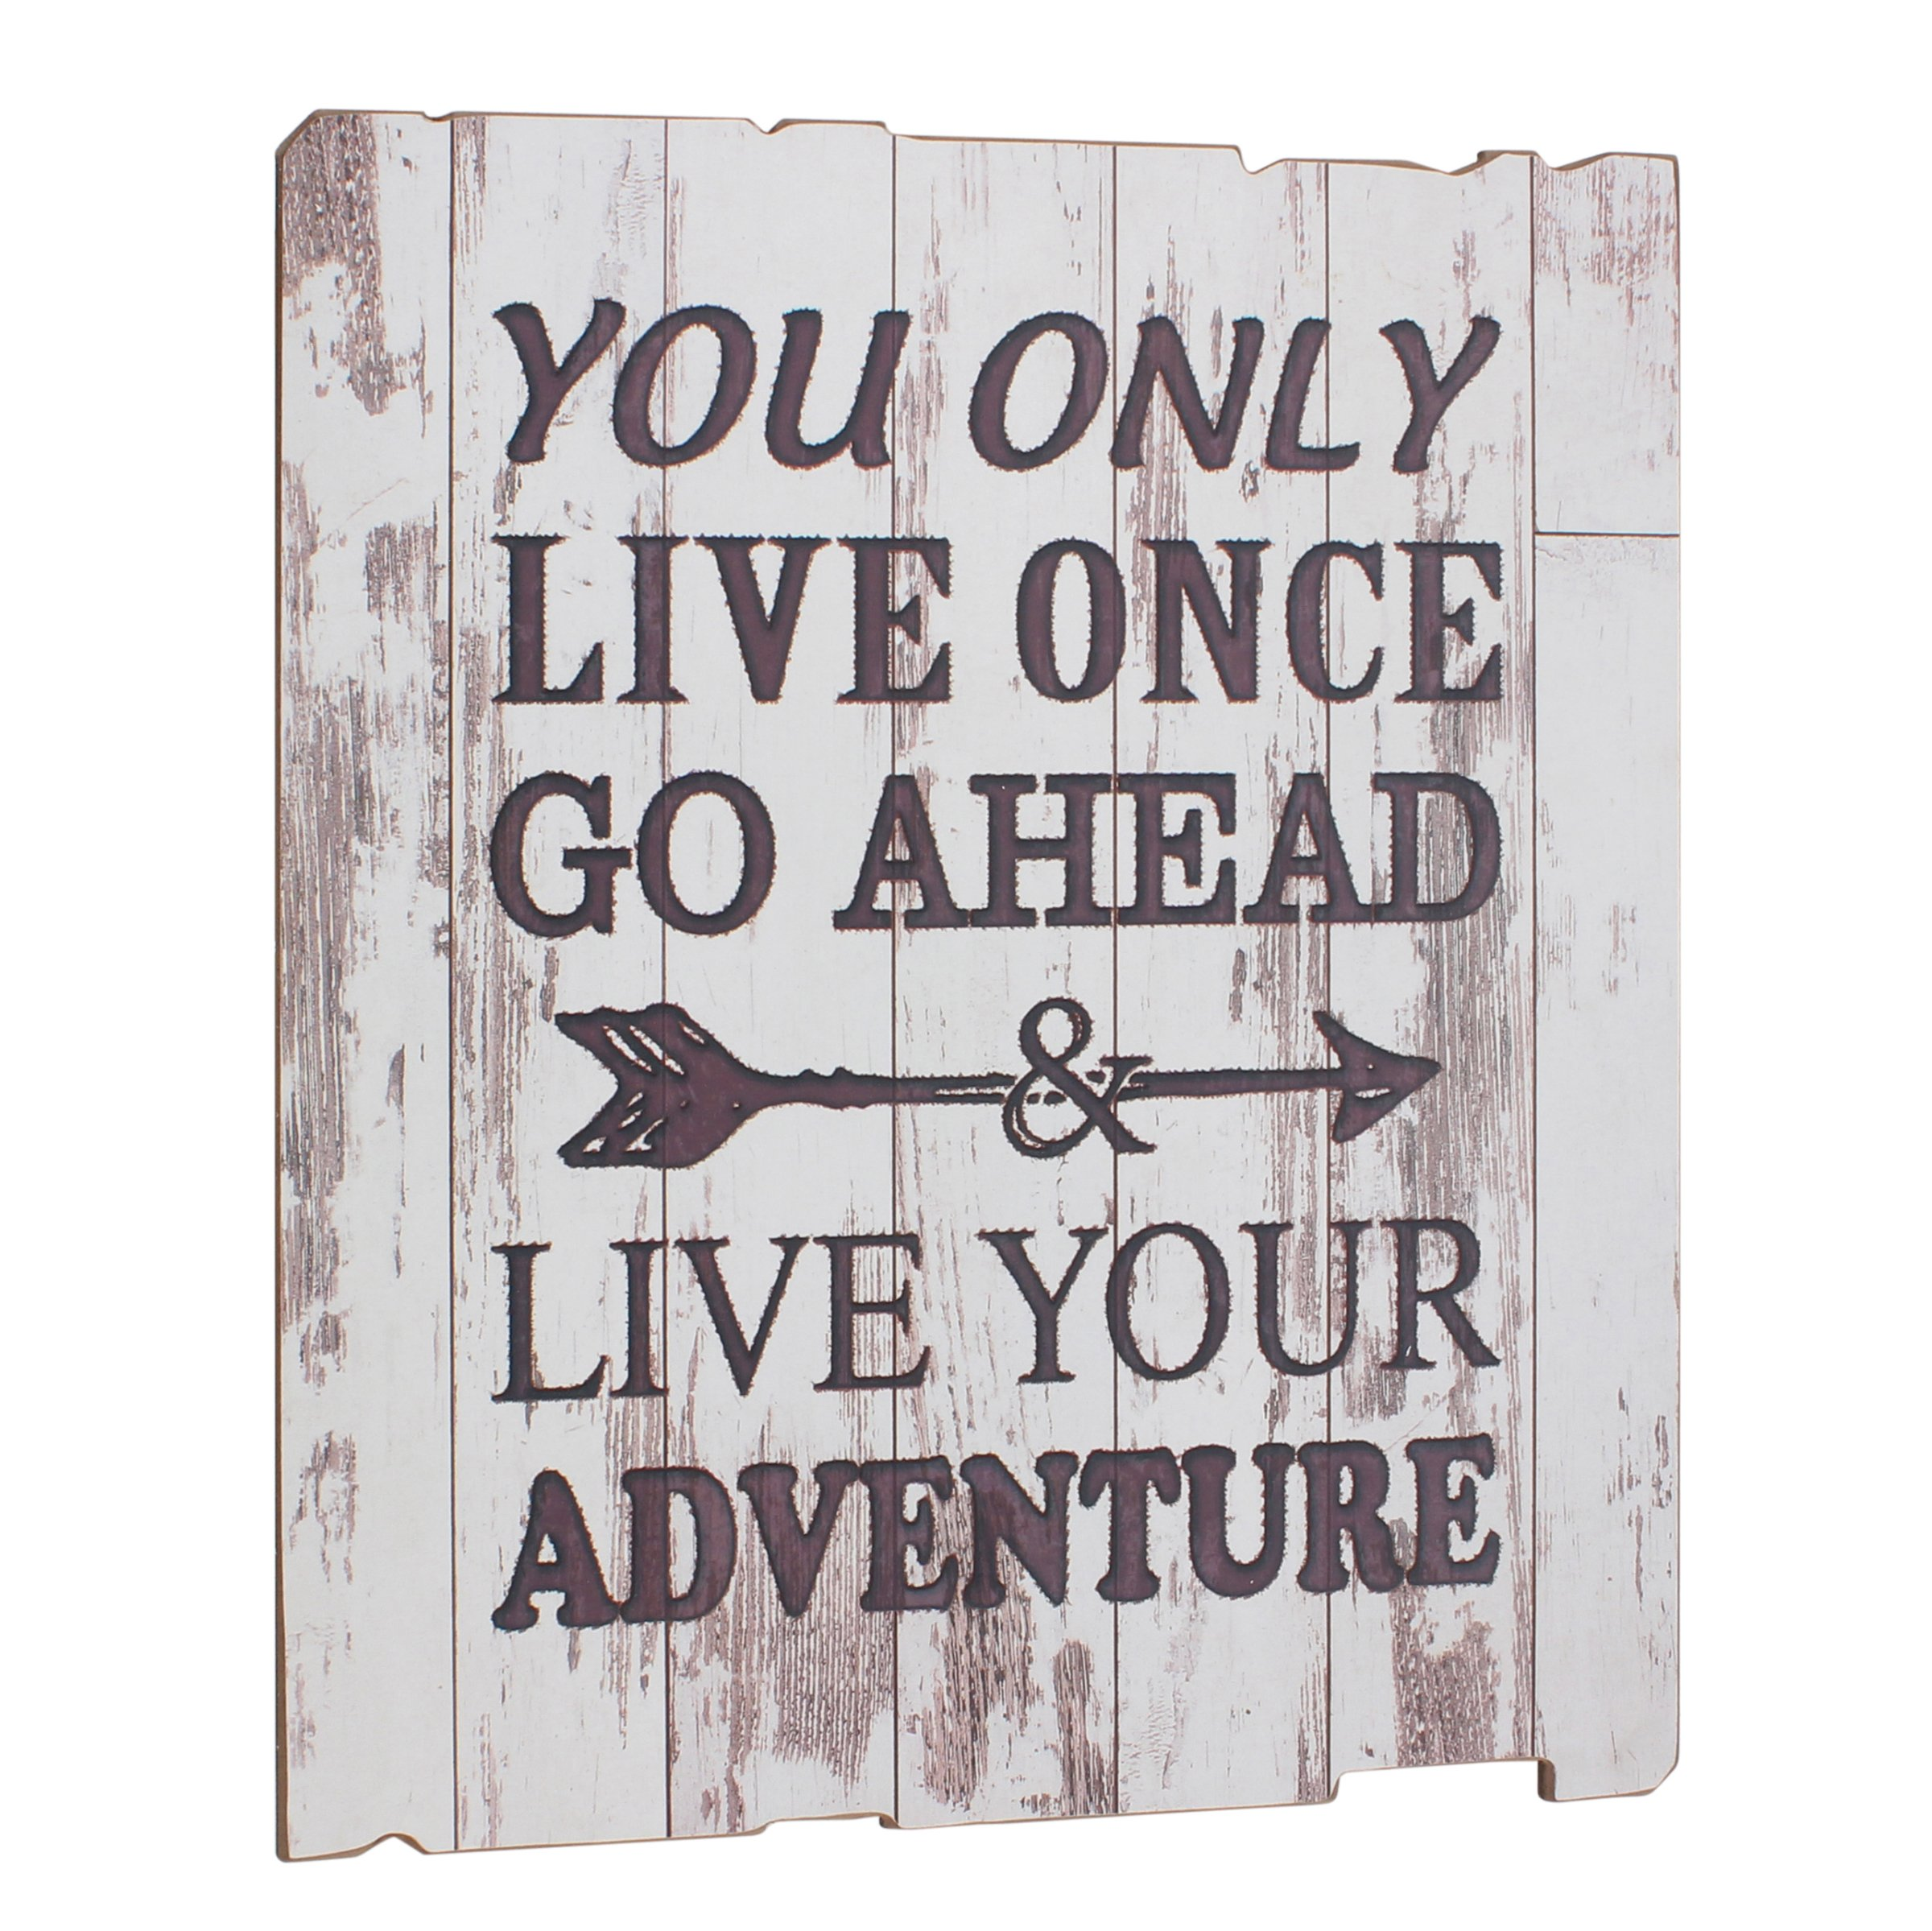 Stonebriar Rustic Wooden Worn White Painted ''Live Your Adventure'' Wall Art with Attached Hanger, Inspirational Wall Decor, Artwork for Entryway, Office, Bedroom, and Living Room